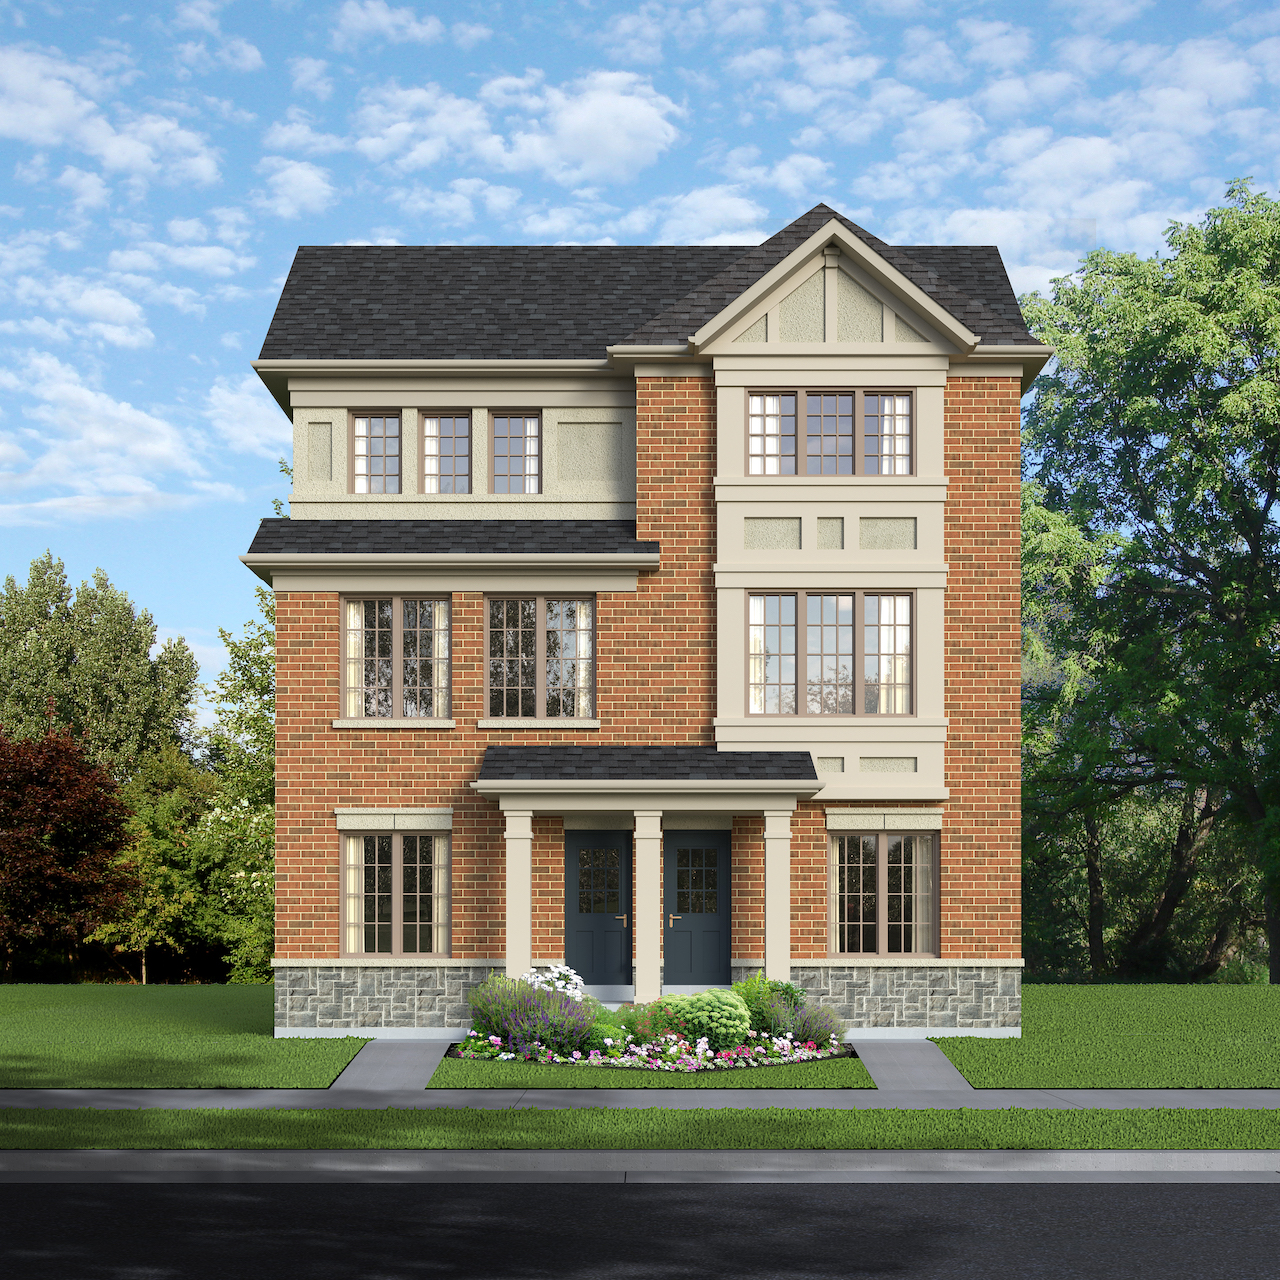 Exterior rendering of The Village at Highland Creek Semis 9-10